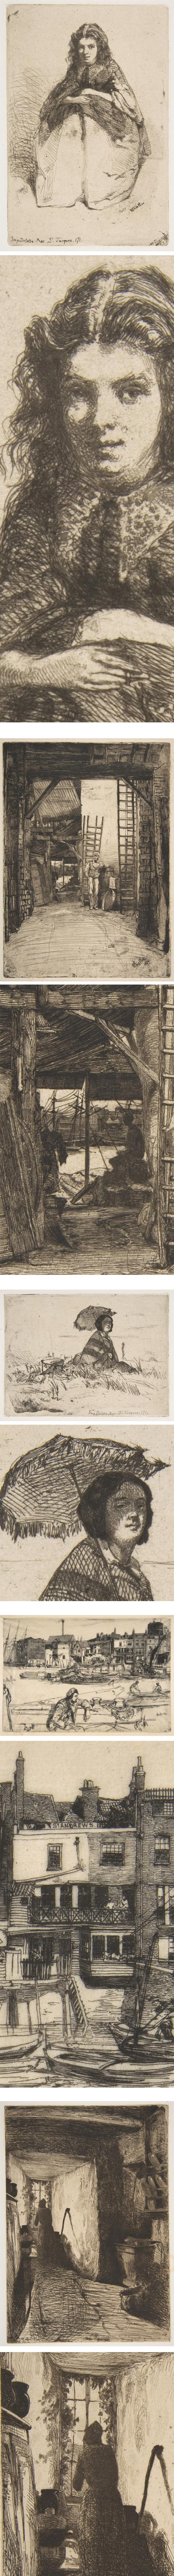 Whistler's etchings